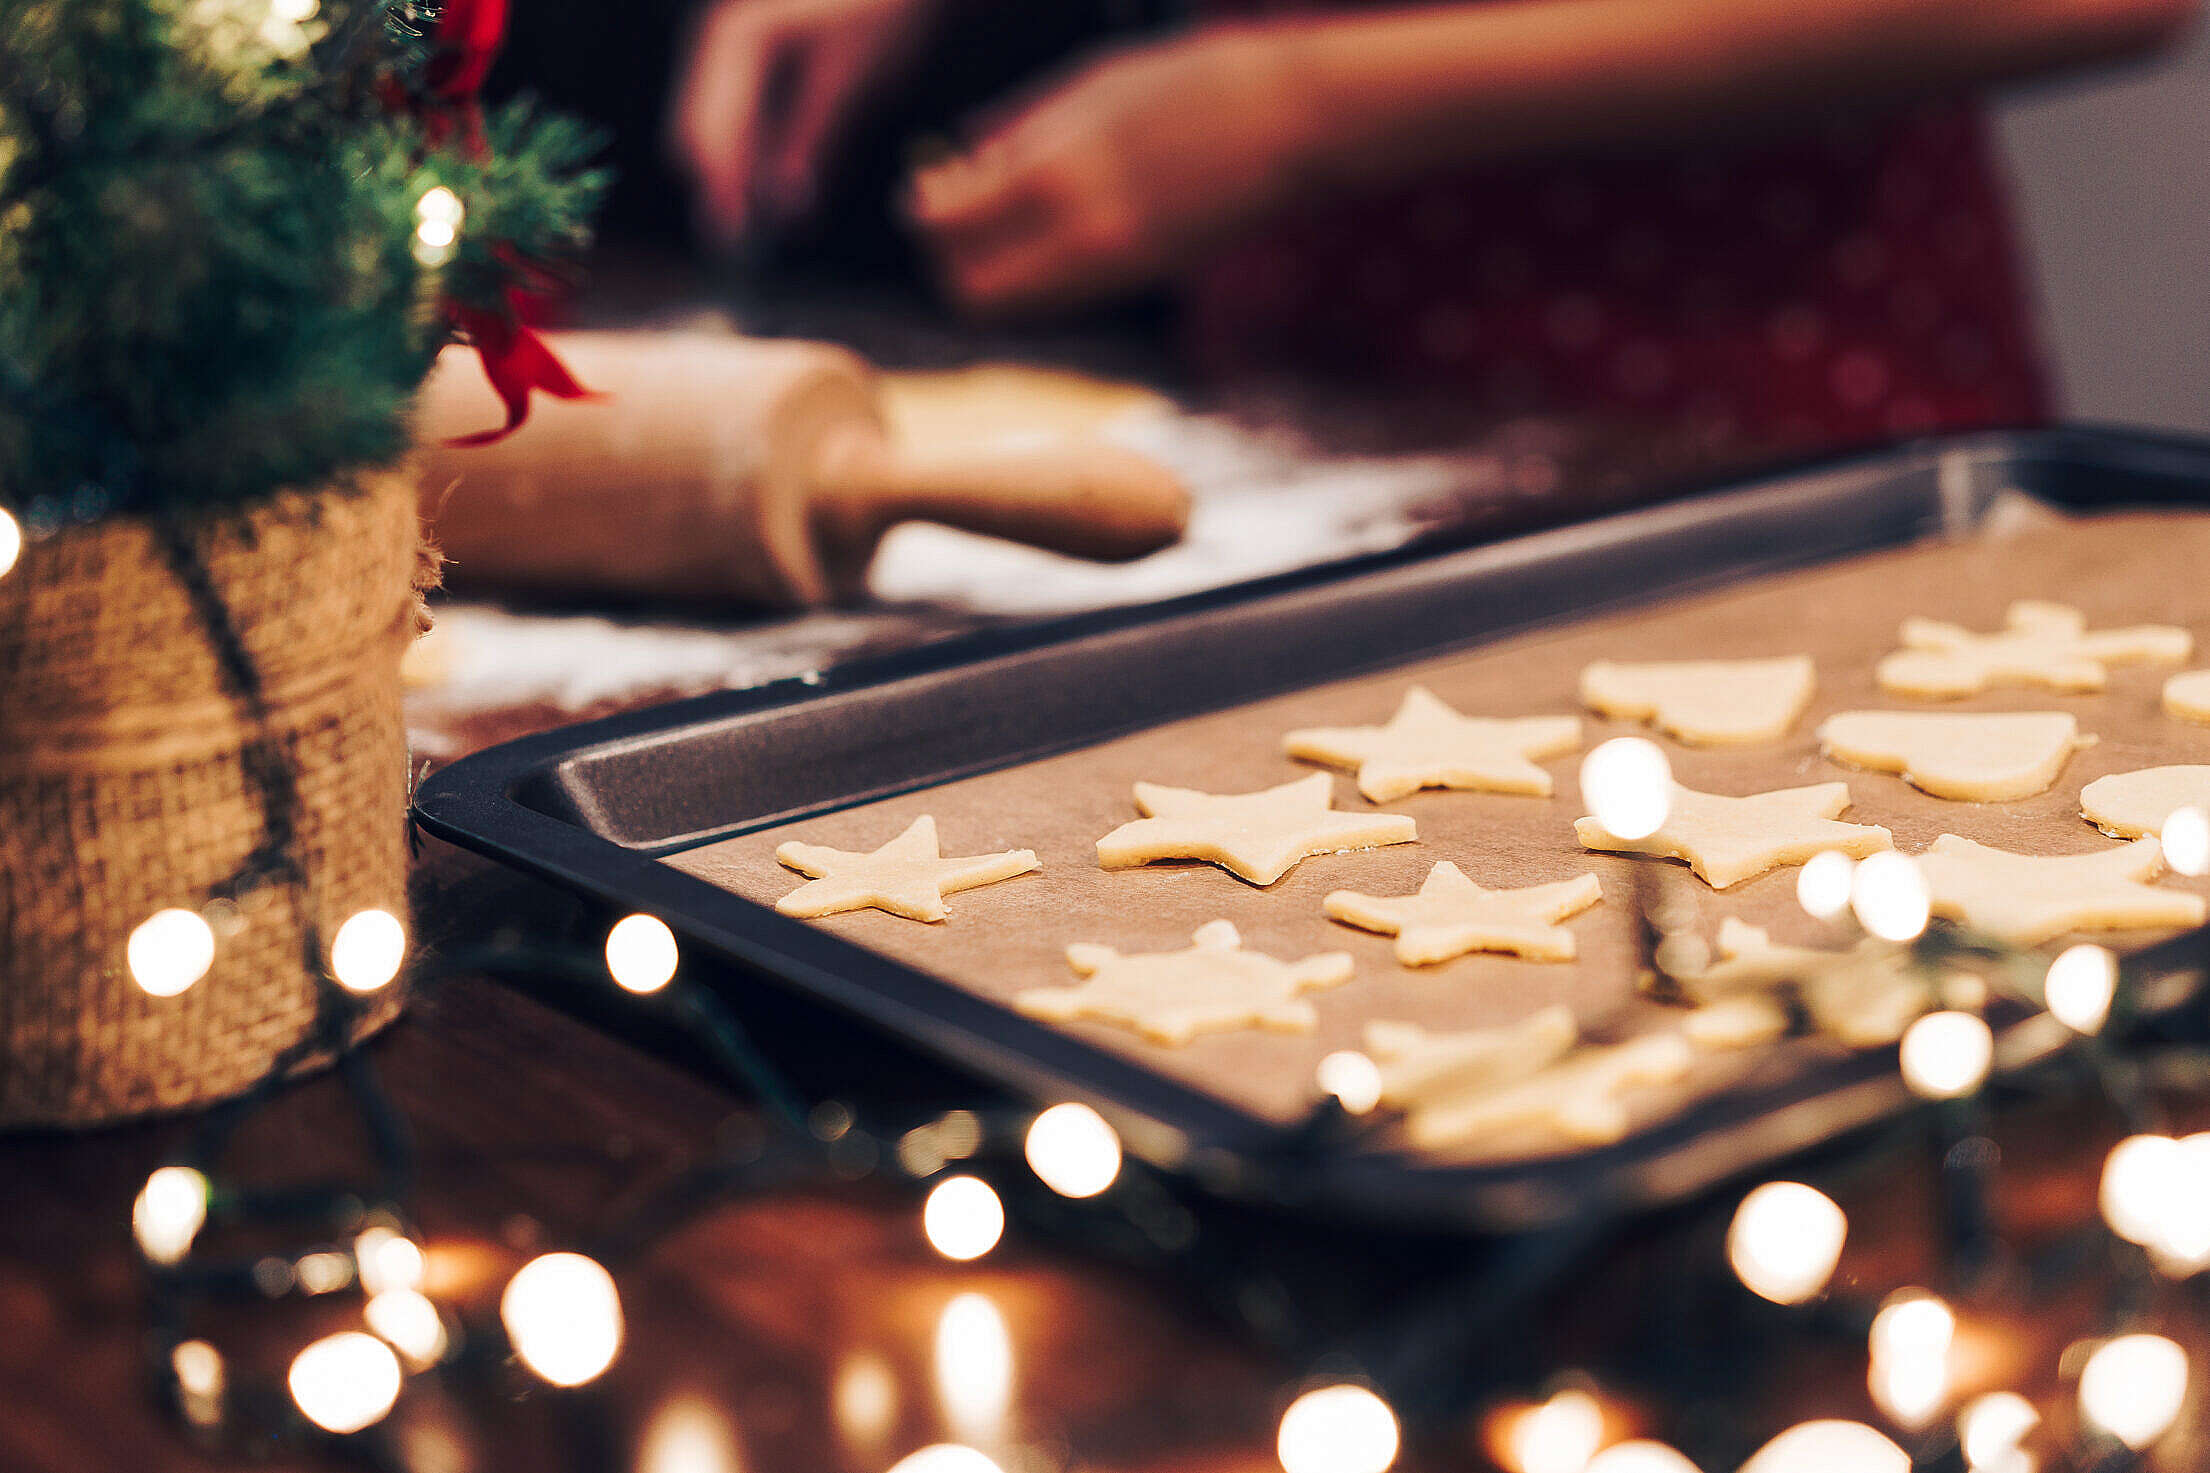 Baking Christmas Gingerbread Cookies Free Stock Photo